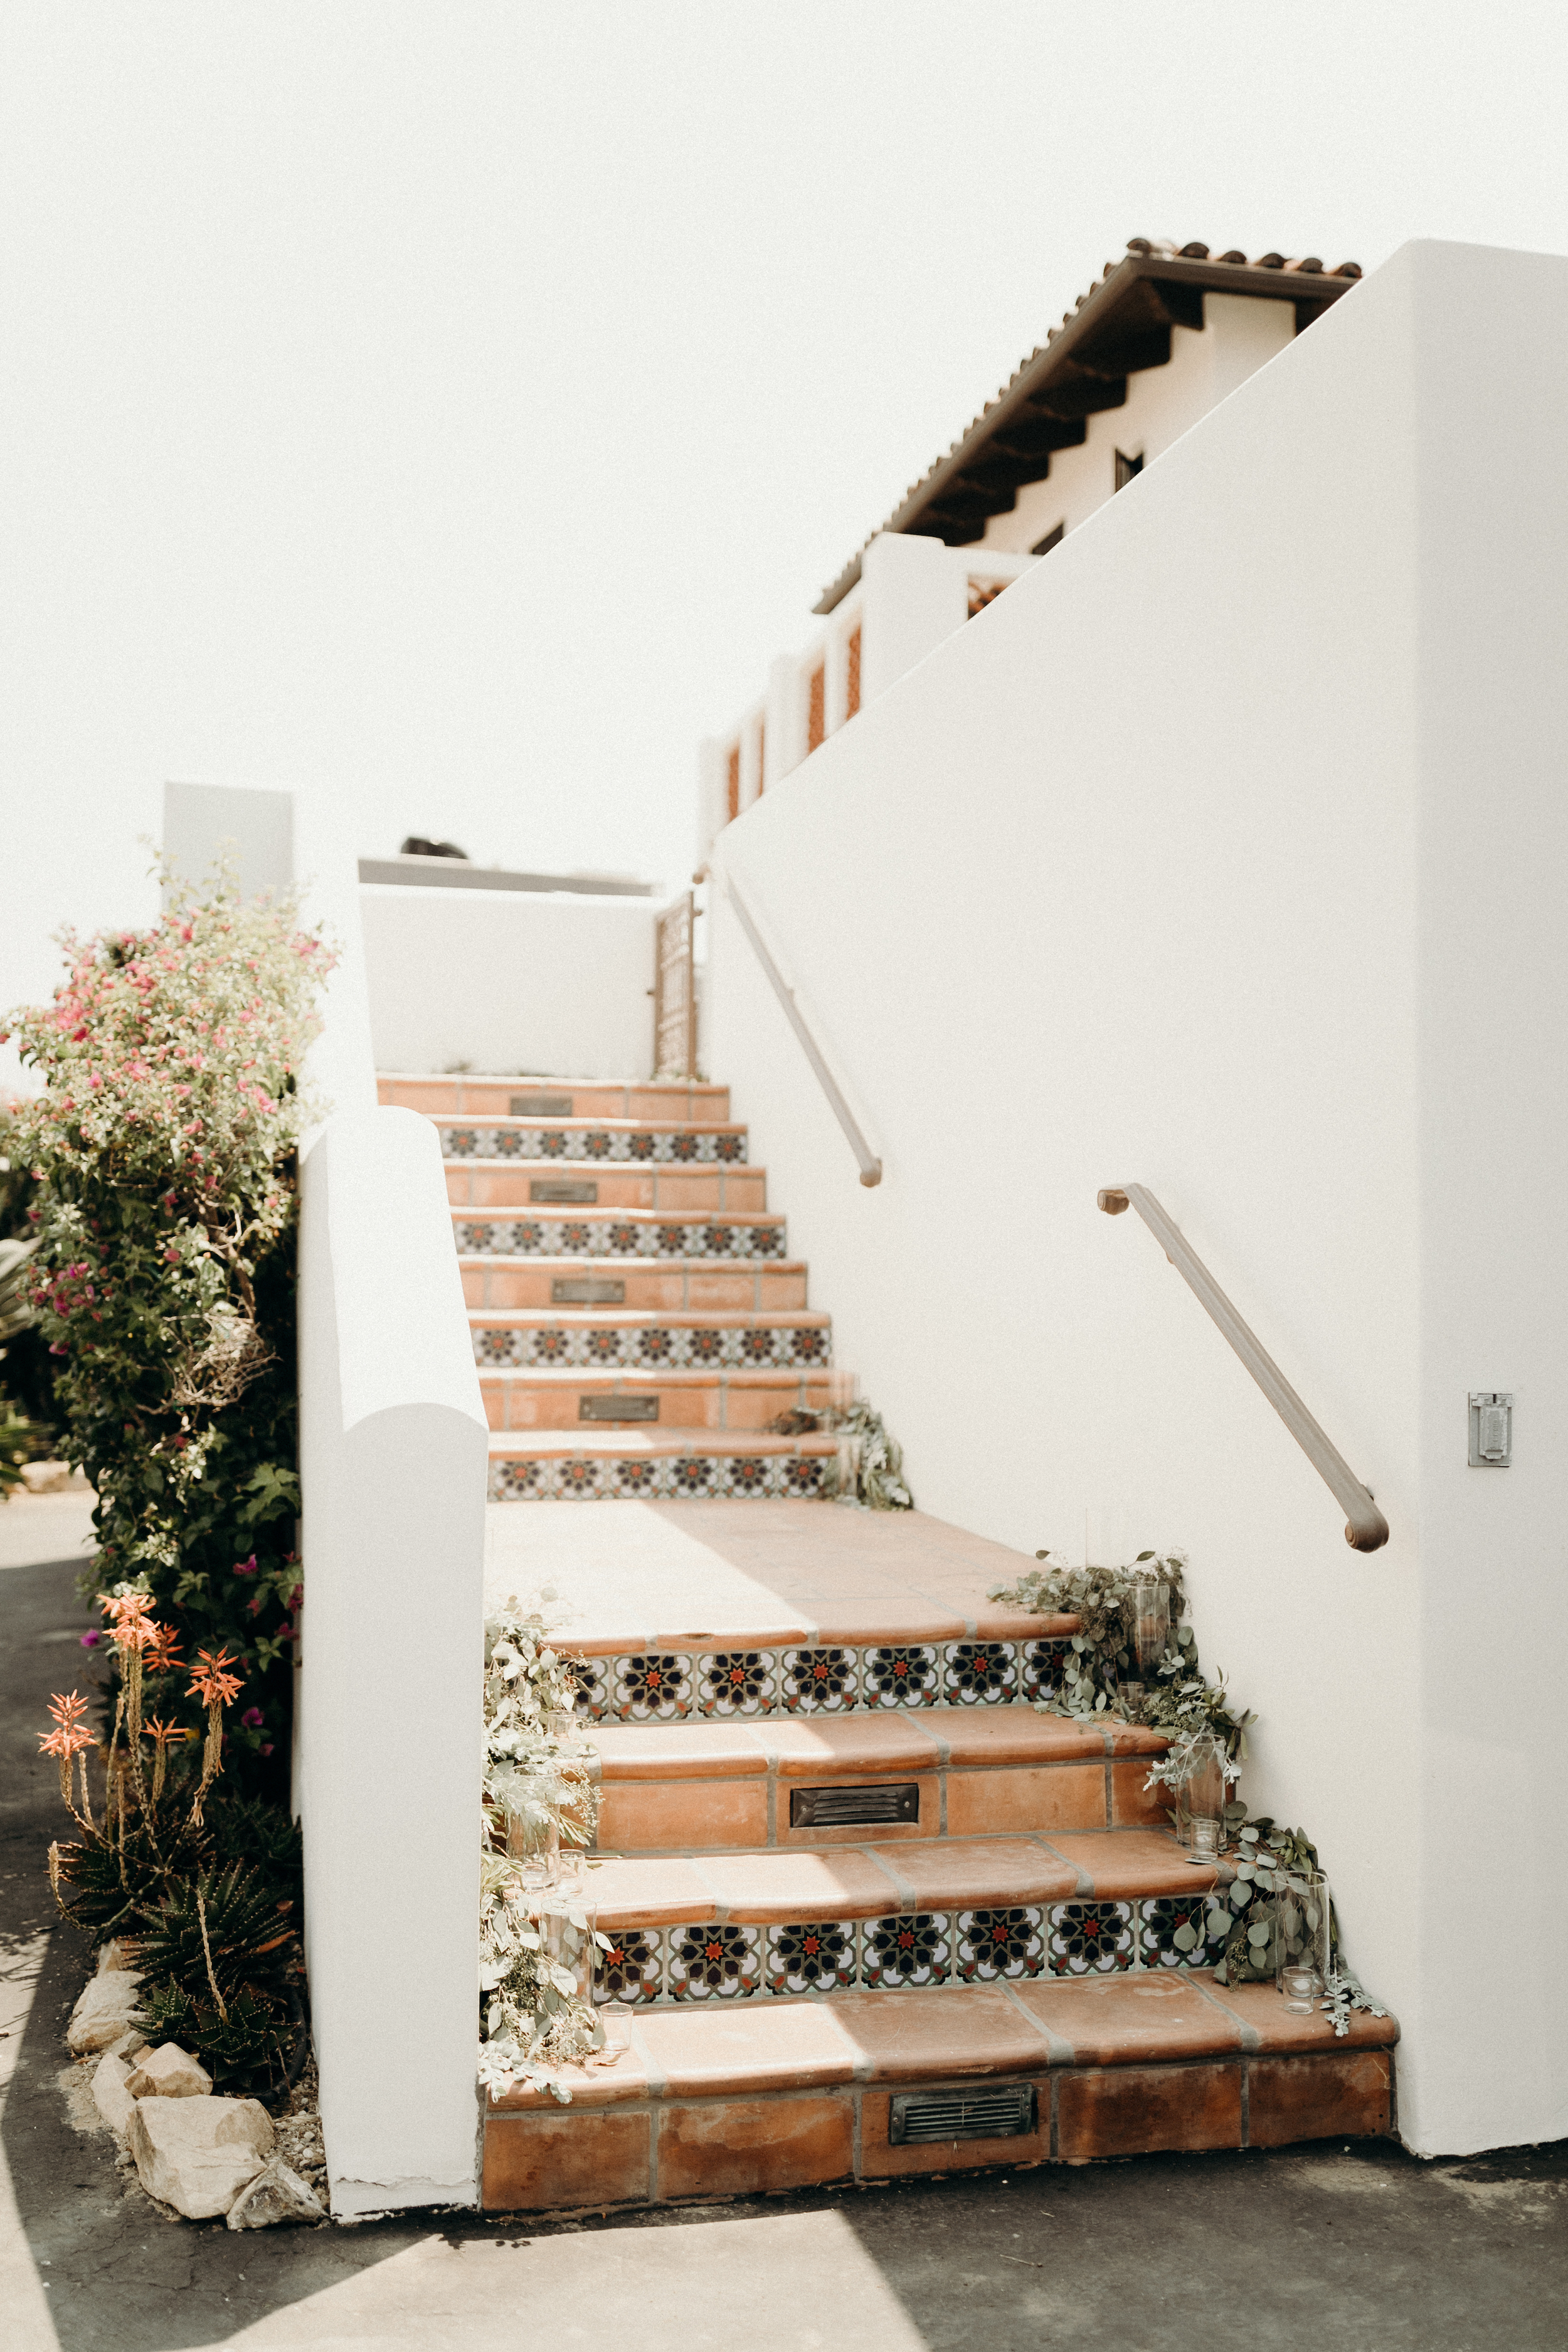 B + M in Malibu California - Victoria Bonvicini Photography-31.jpg